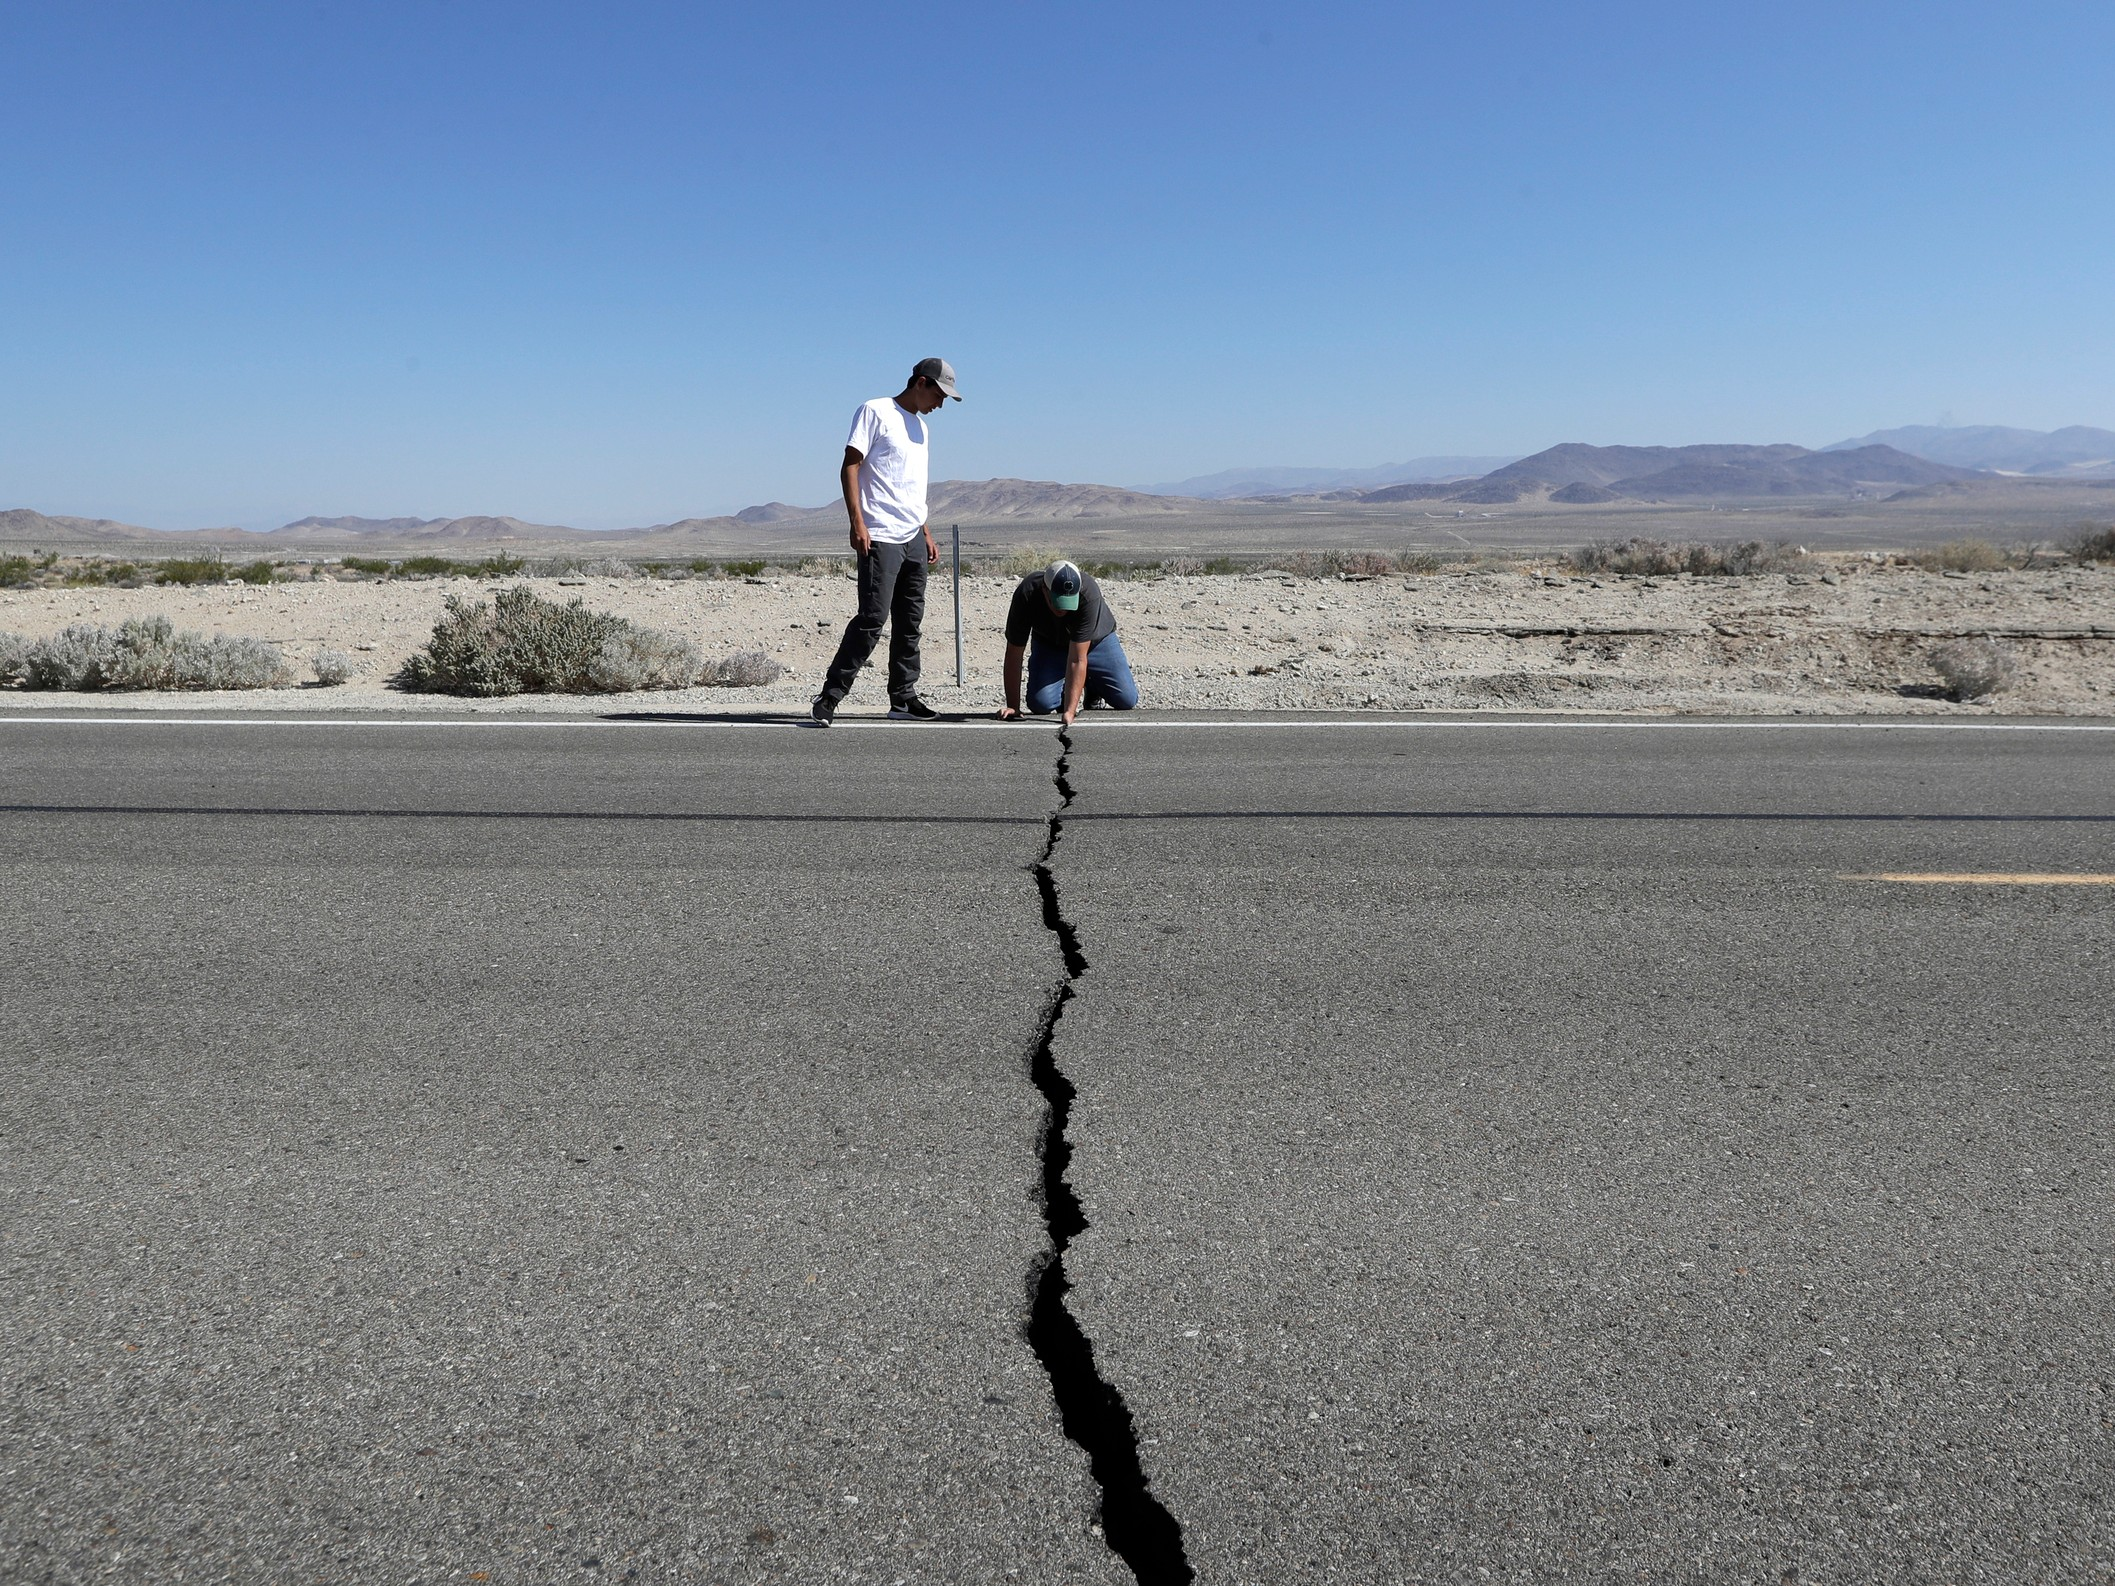 Earthquakes, Under The Earth And 'No Boundaries' - capradio org